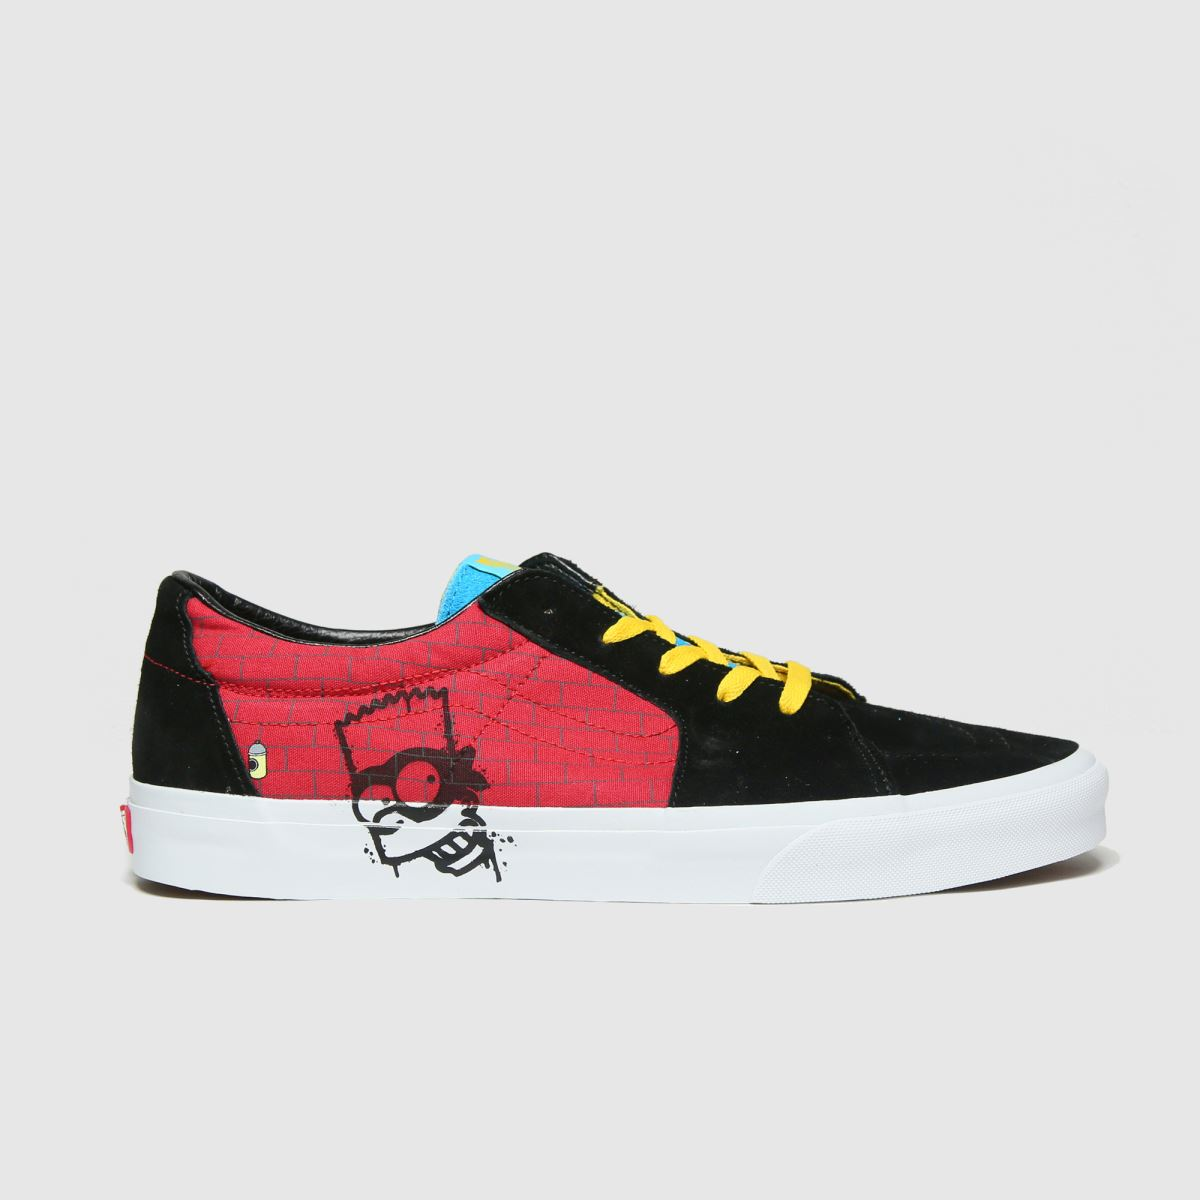 Vans Black & Red Sk8 Low The Simpsons Trainers